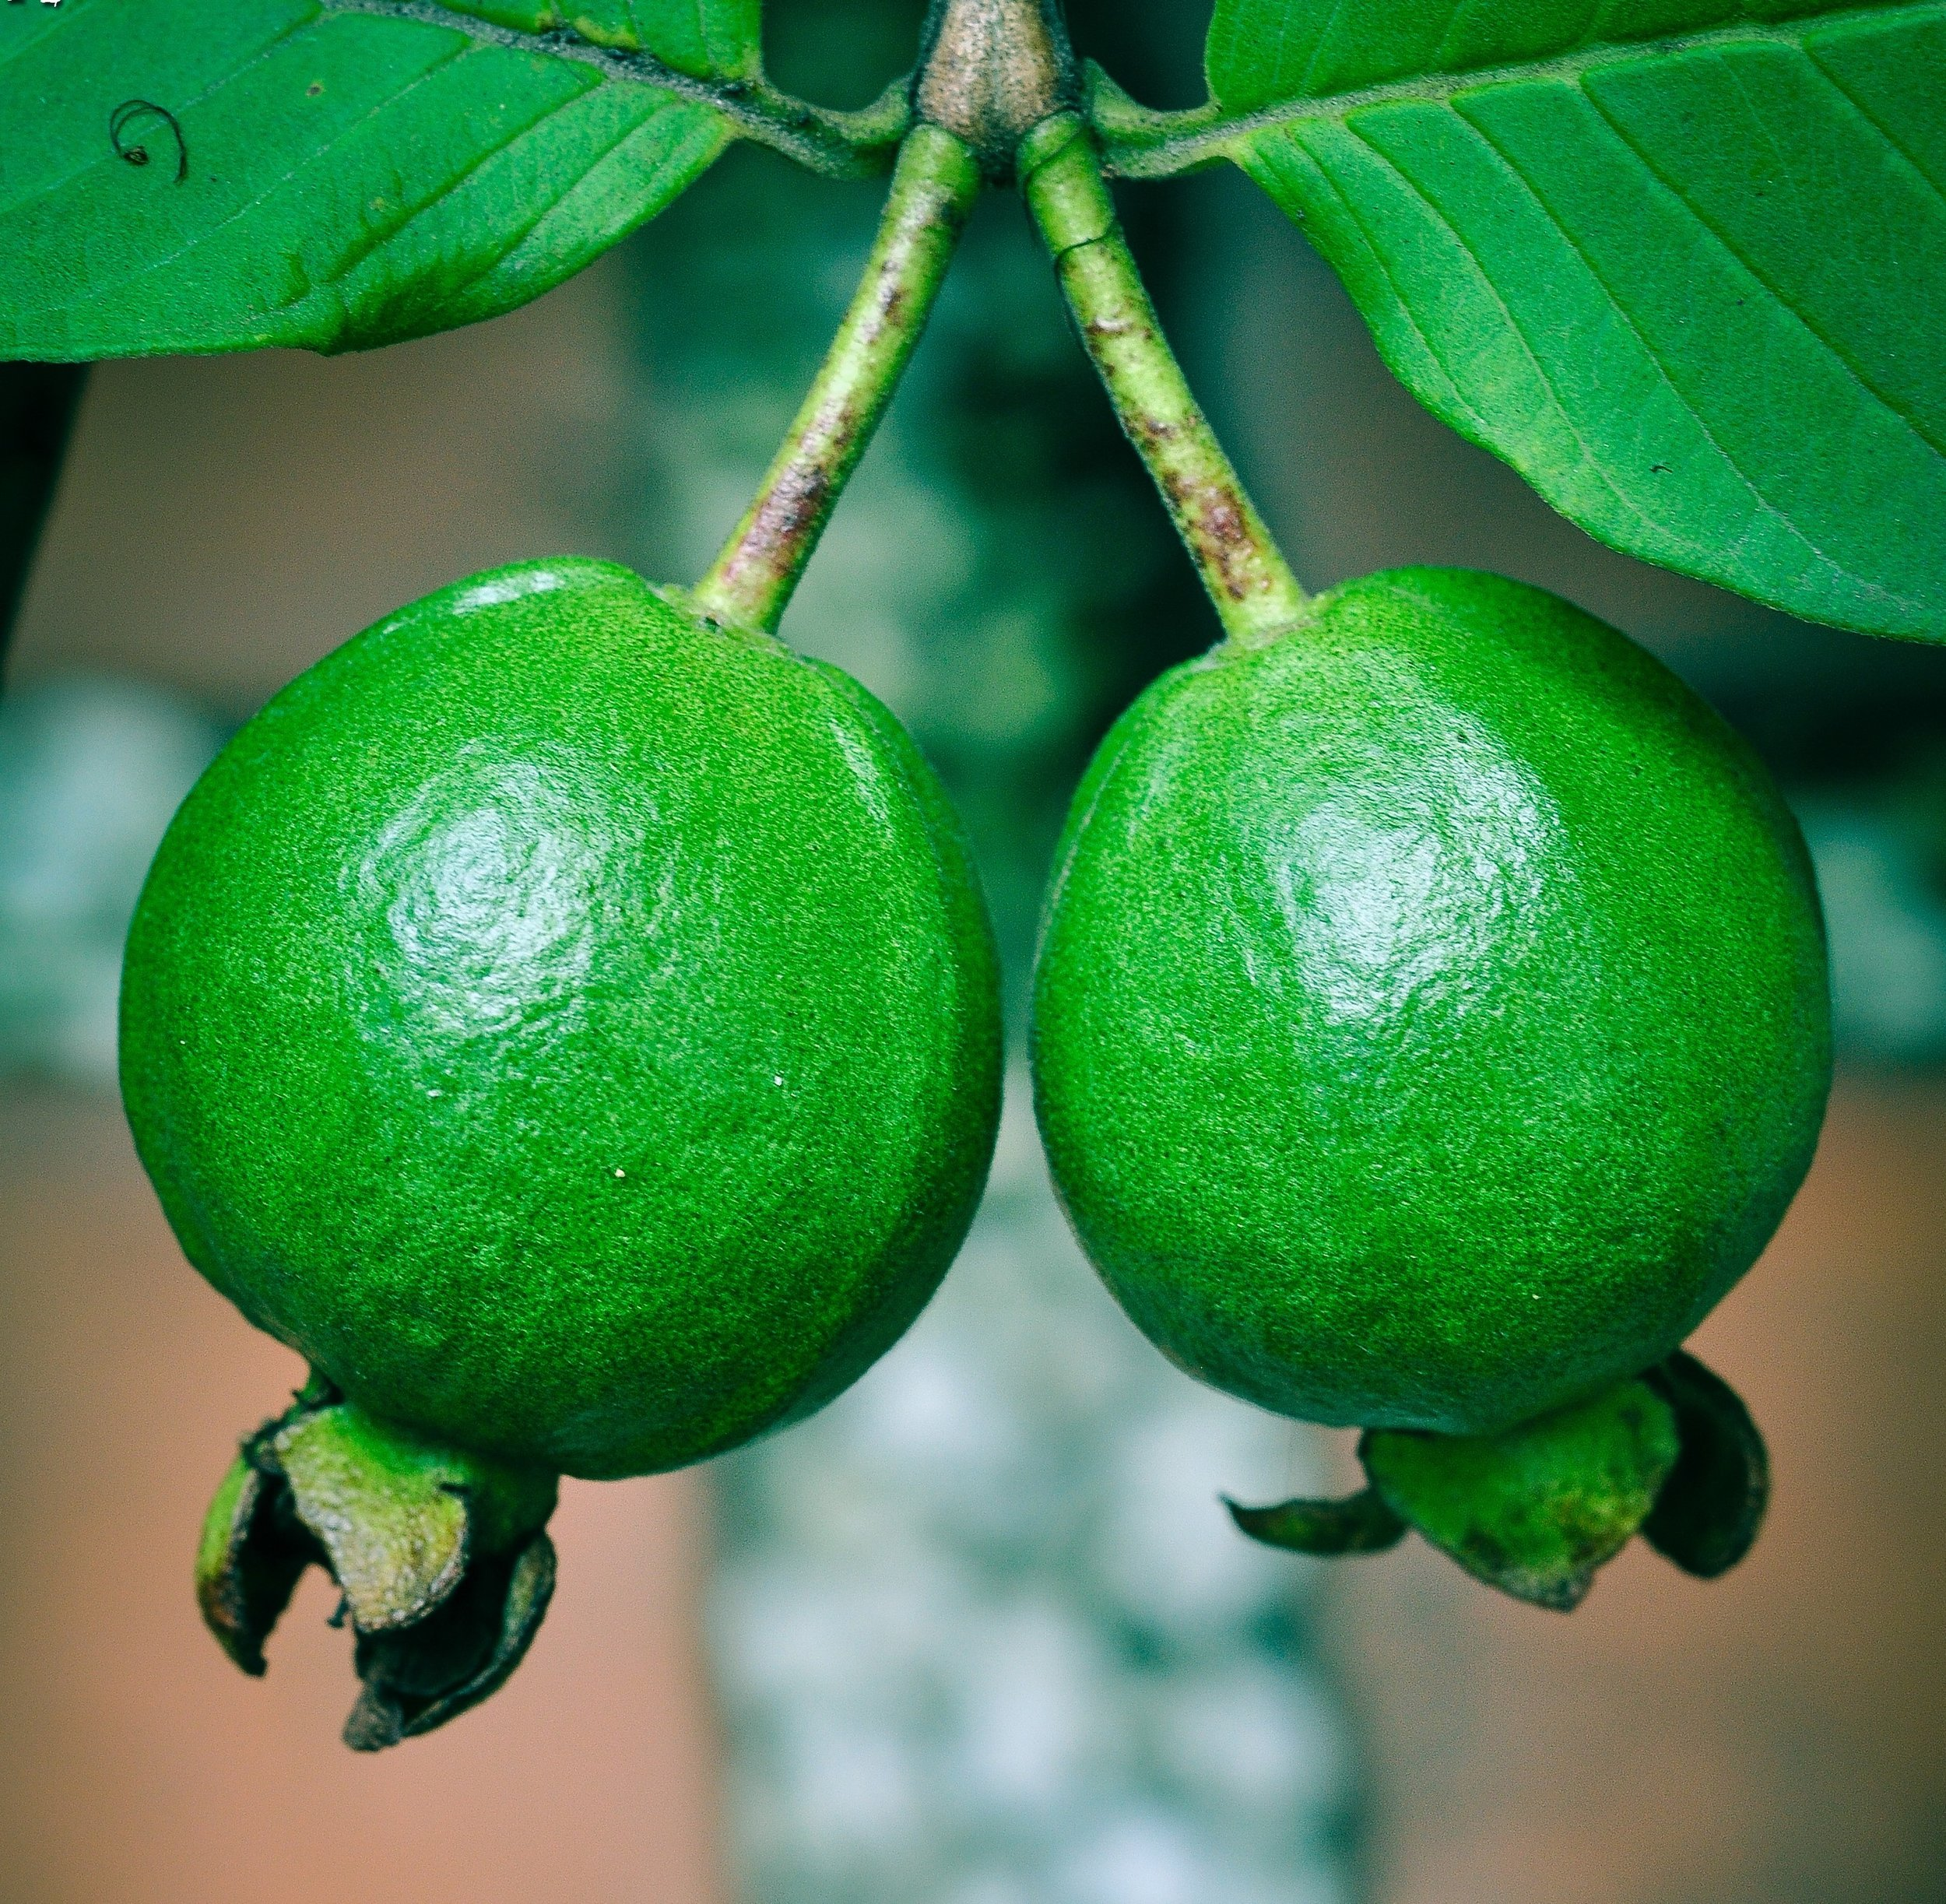 The common guava plant, scientific name  p  sidium guajava,  has similarly air-purifying effects.